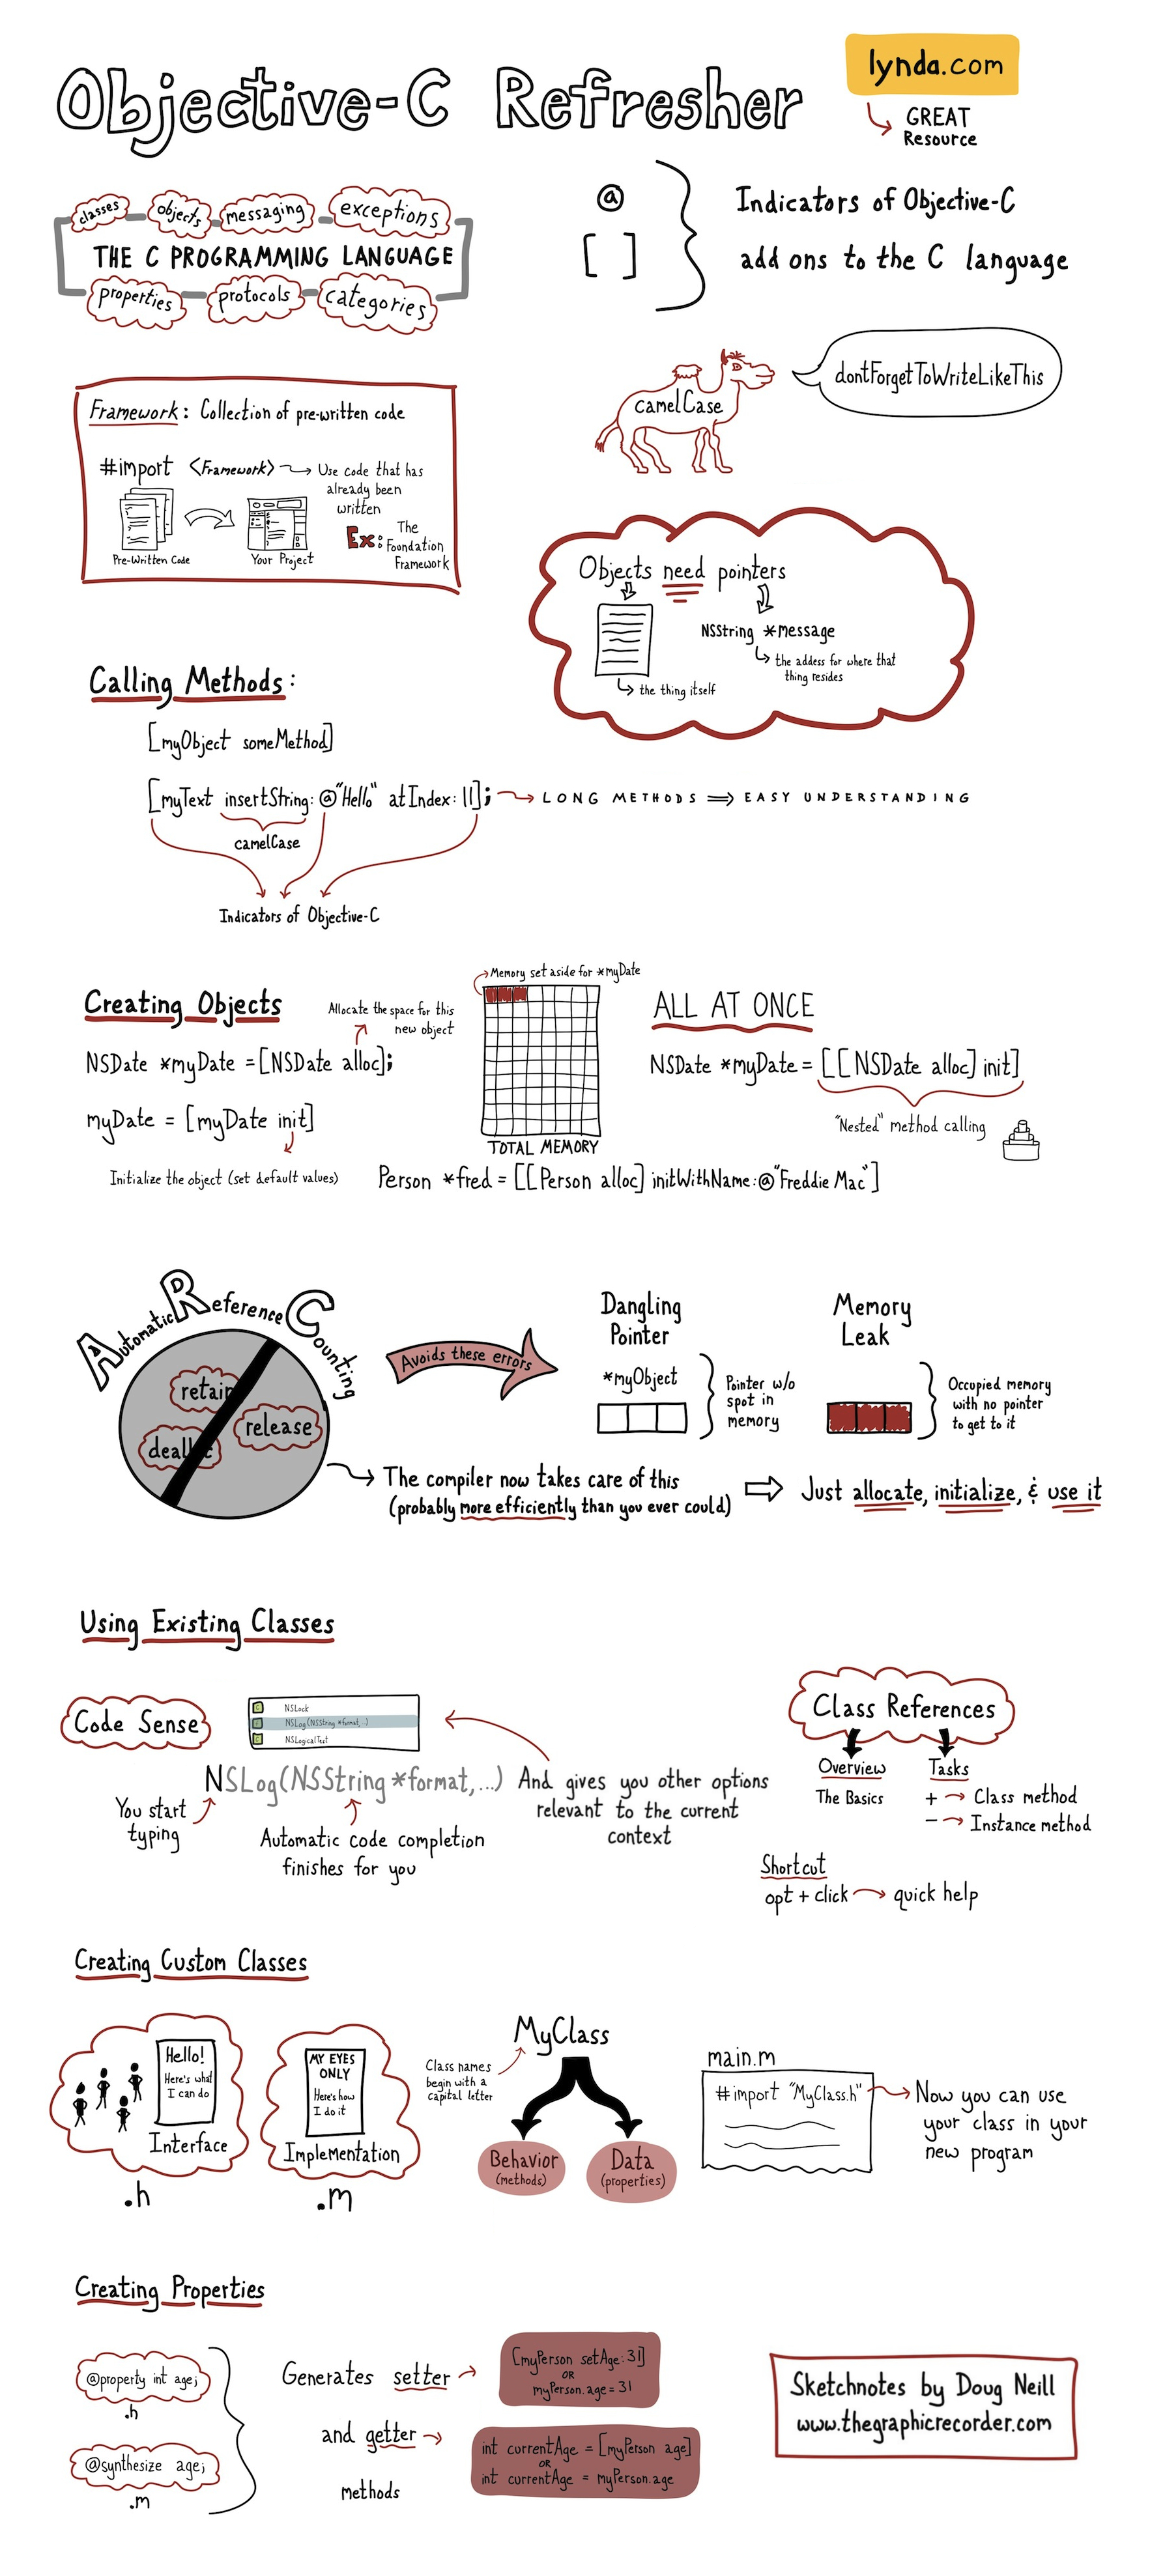 The Graphic Recorder - Doug Neill - Lynda Objective C Refresher Sketchnotes - Simon Allardice